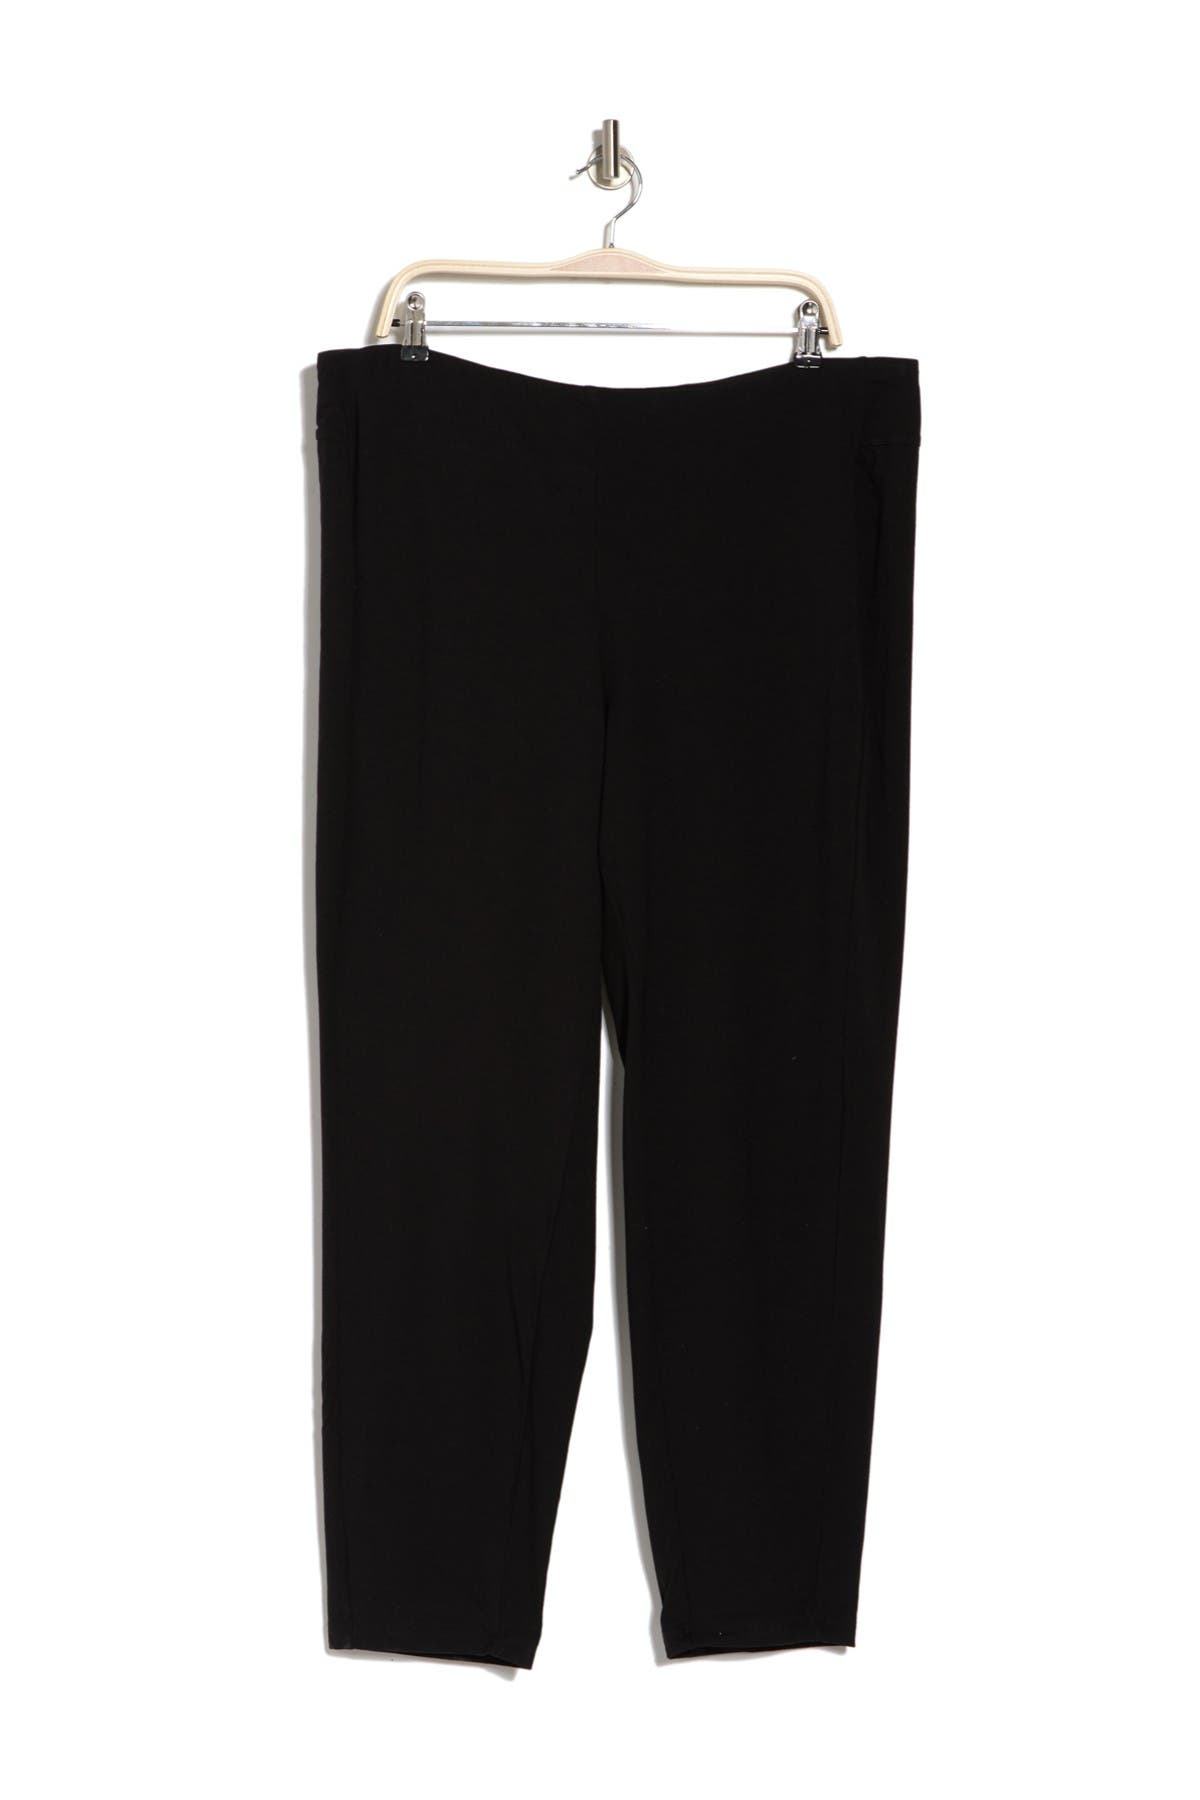 Image of GRACE ELEMENTS Knit Pull-On Pants